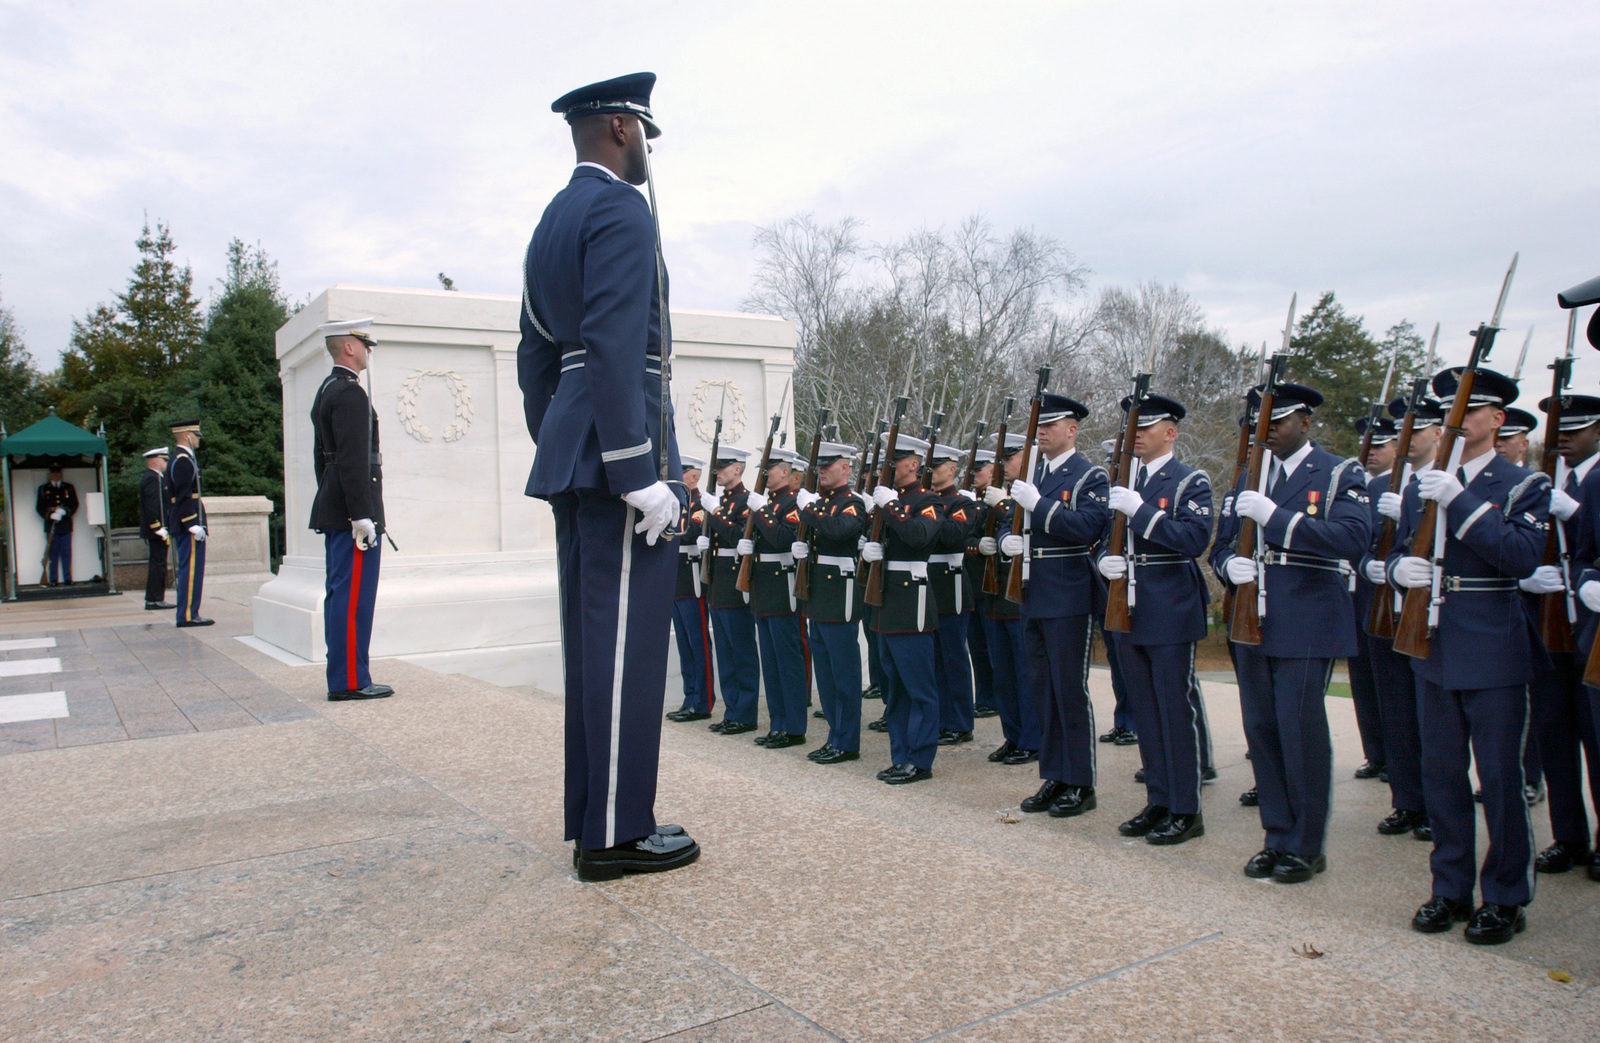 US Air Force (USAF) Captain (CPT) Jamale Hart, US Air Force Honor Guard, orders a flight of Honor Guardsmen to attention while at the Tomb of the Unknown Soldier during the 2003 Veteran's Day wreath laying ceremony